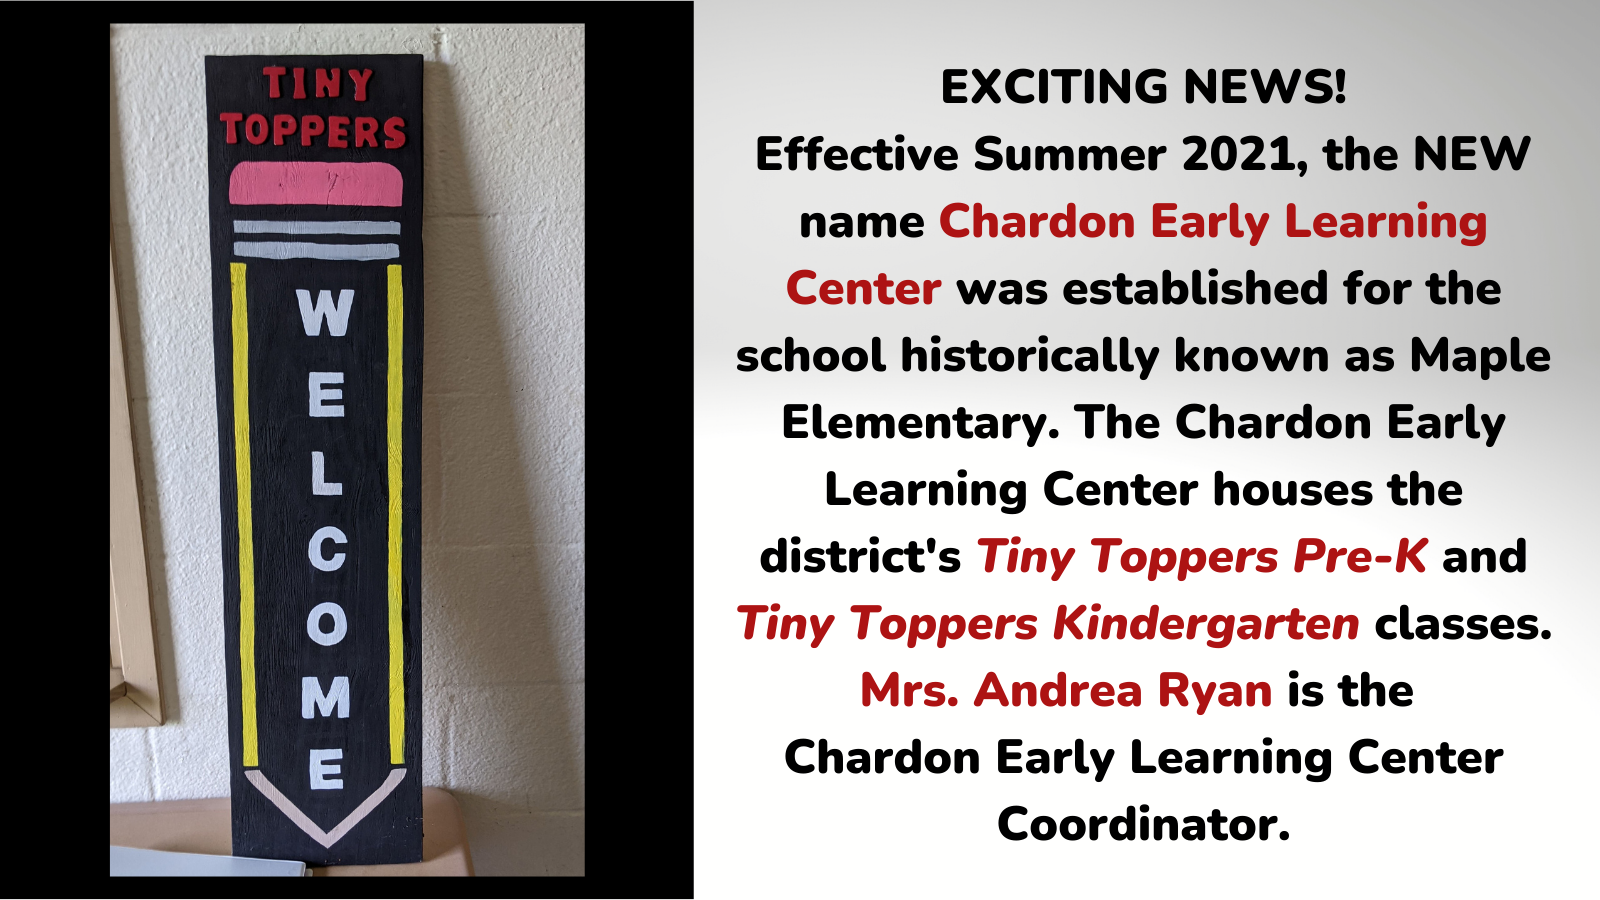 graphic featuring a wooden plaque with a pencil on it and verbiage:  Tiny Toppers Welcome; other half of graphic features verbiage:  EXCITING NEWS! Effective Summer 2021, the NEW name Chardon Early Learning Center was established for the school historically known as Maple Elementary. The Chardon Early Learning Center houses the district's Tiny Toppers Pre-K and Tiny Toppers Kindergarten classes. Mrs. Andrea Ryan is the  Chardon Early Learning Center Coordinator.